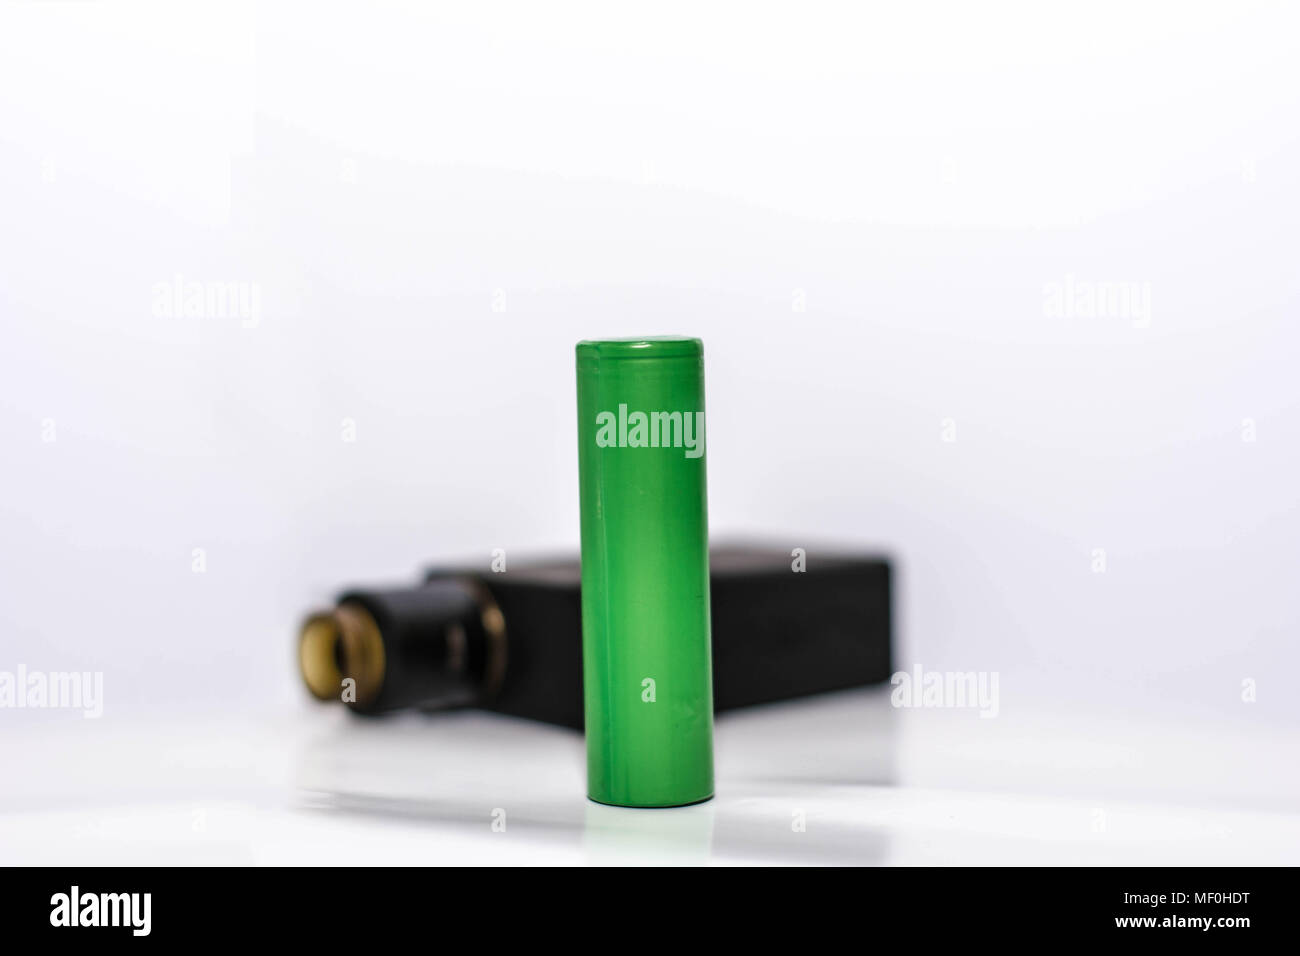 Personal Vaporizer with baterry, electronic cigarette - Stock Image